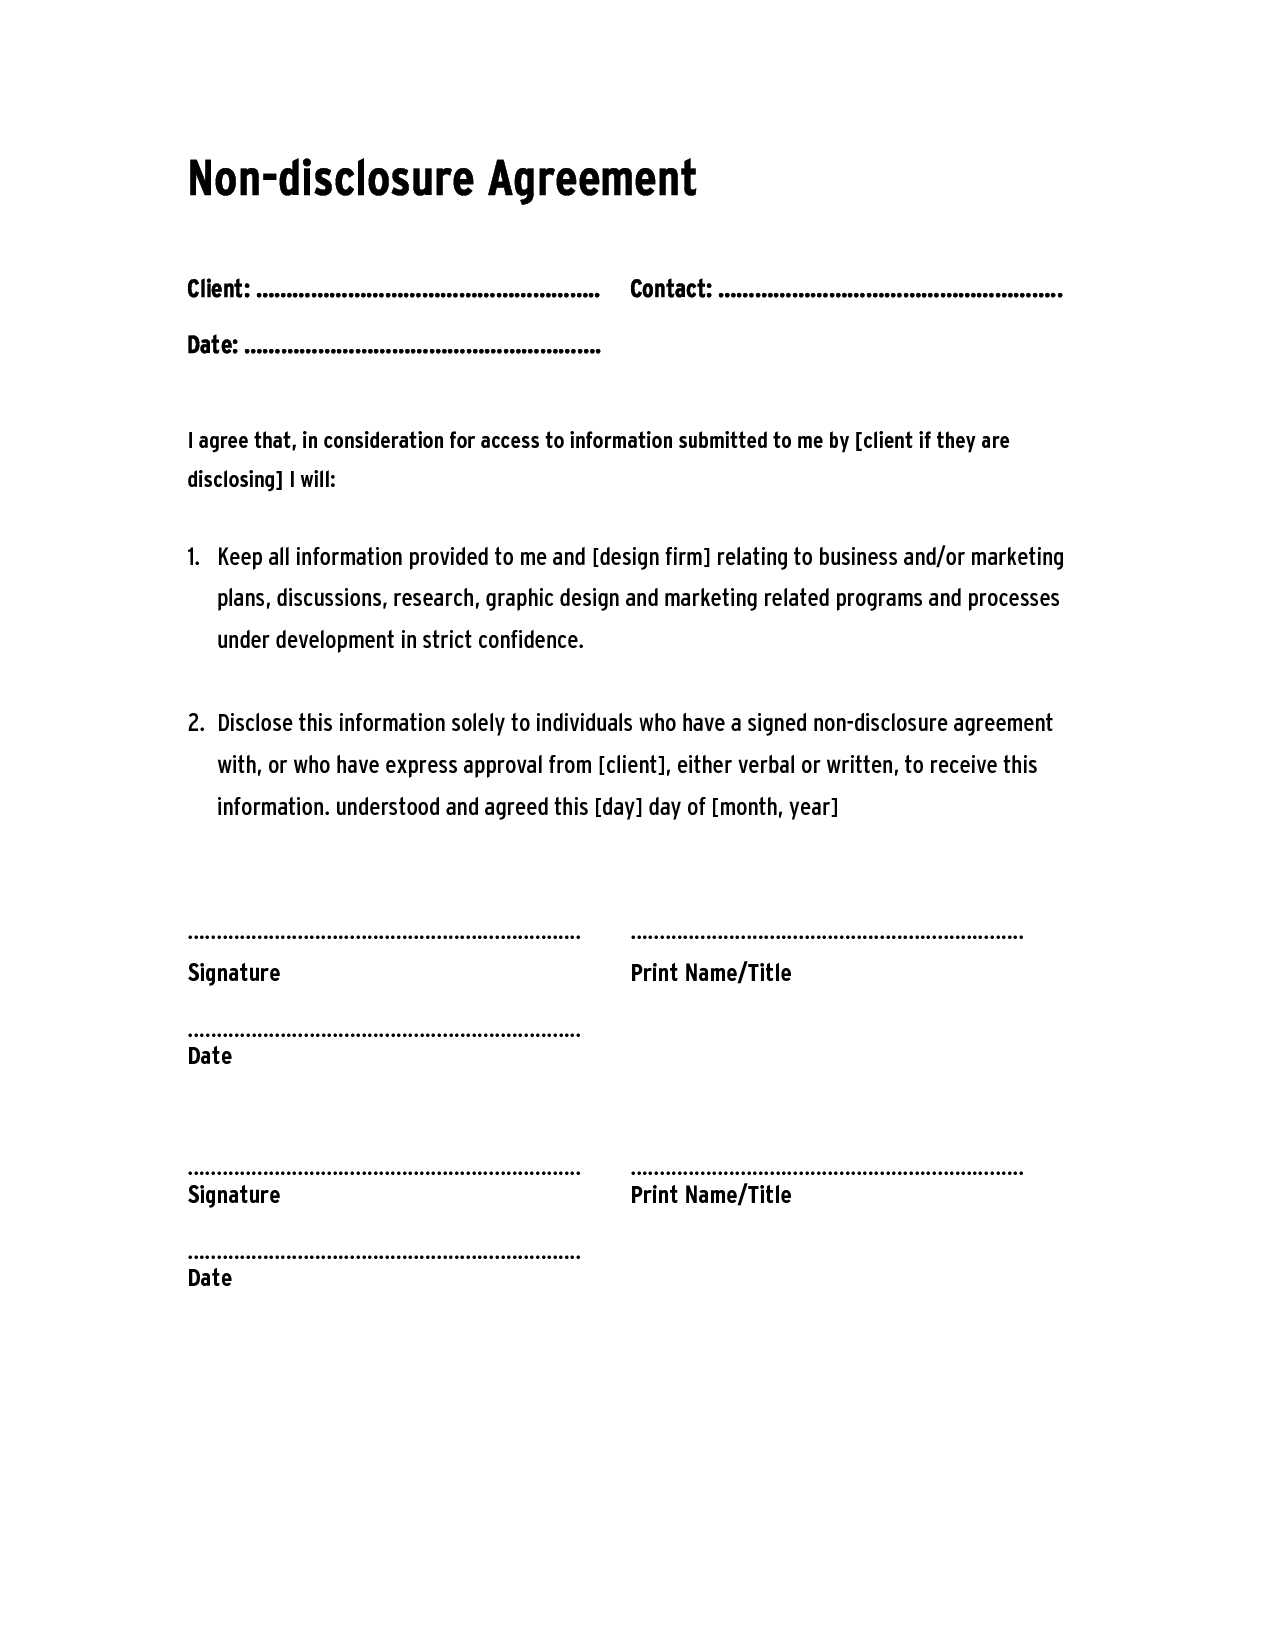 Non Disclosure Agreement Template ,confidentiality Agreement Template  Free Printable Non Disclosure Agreement